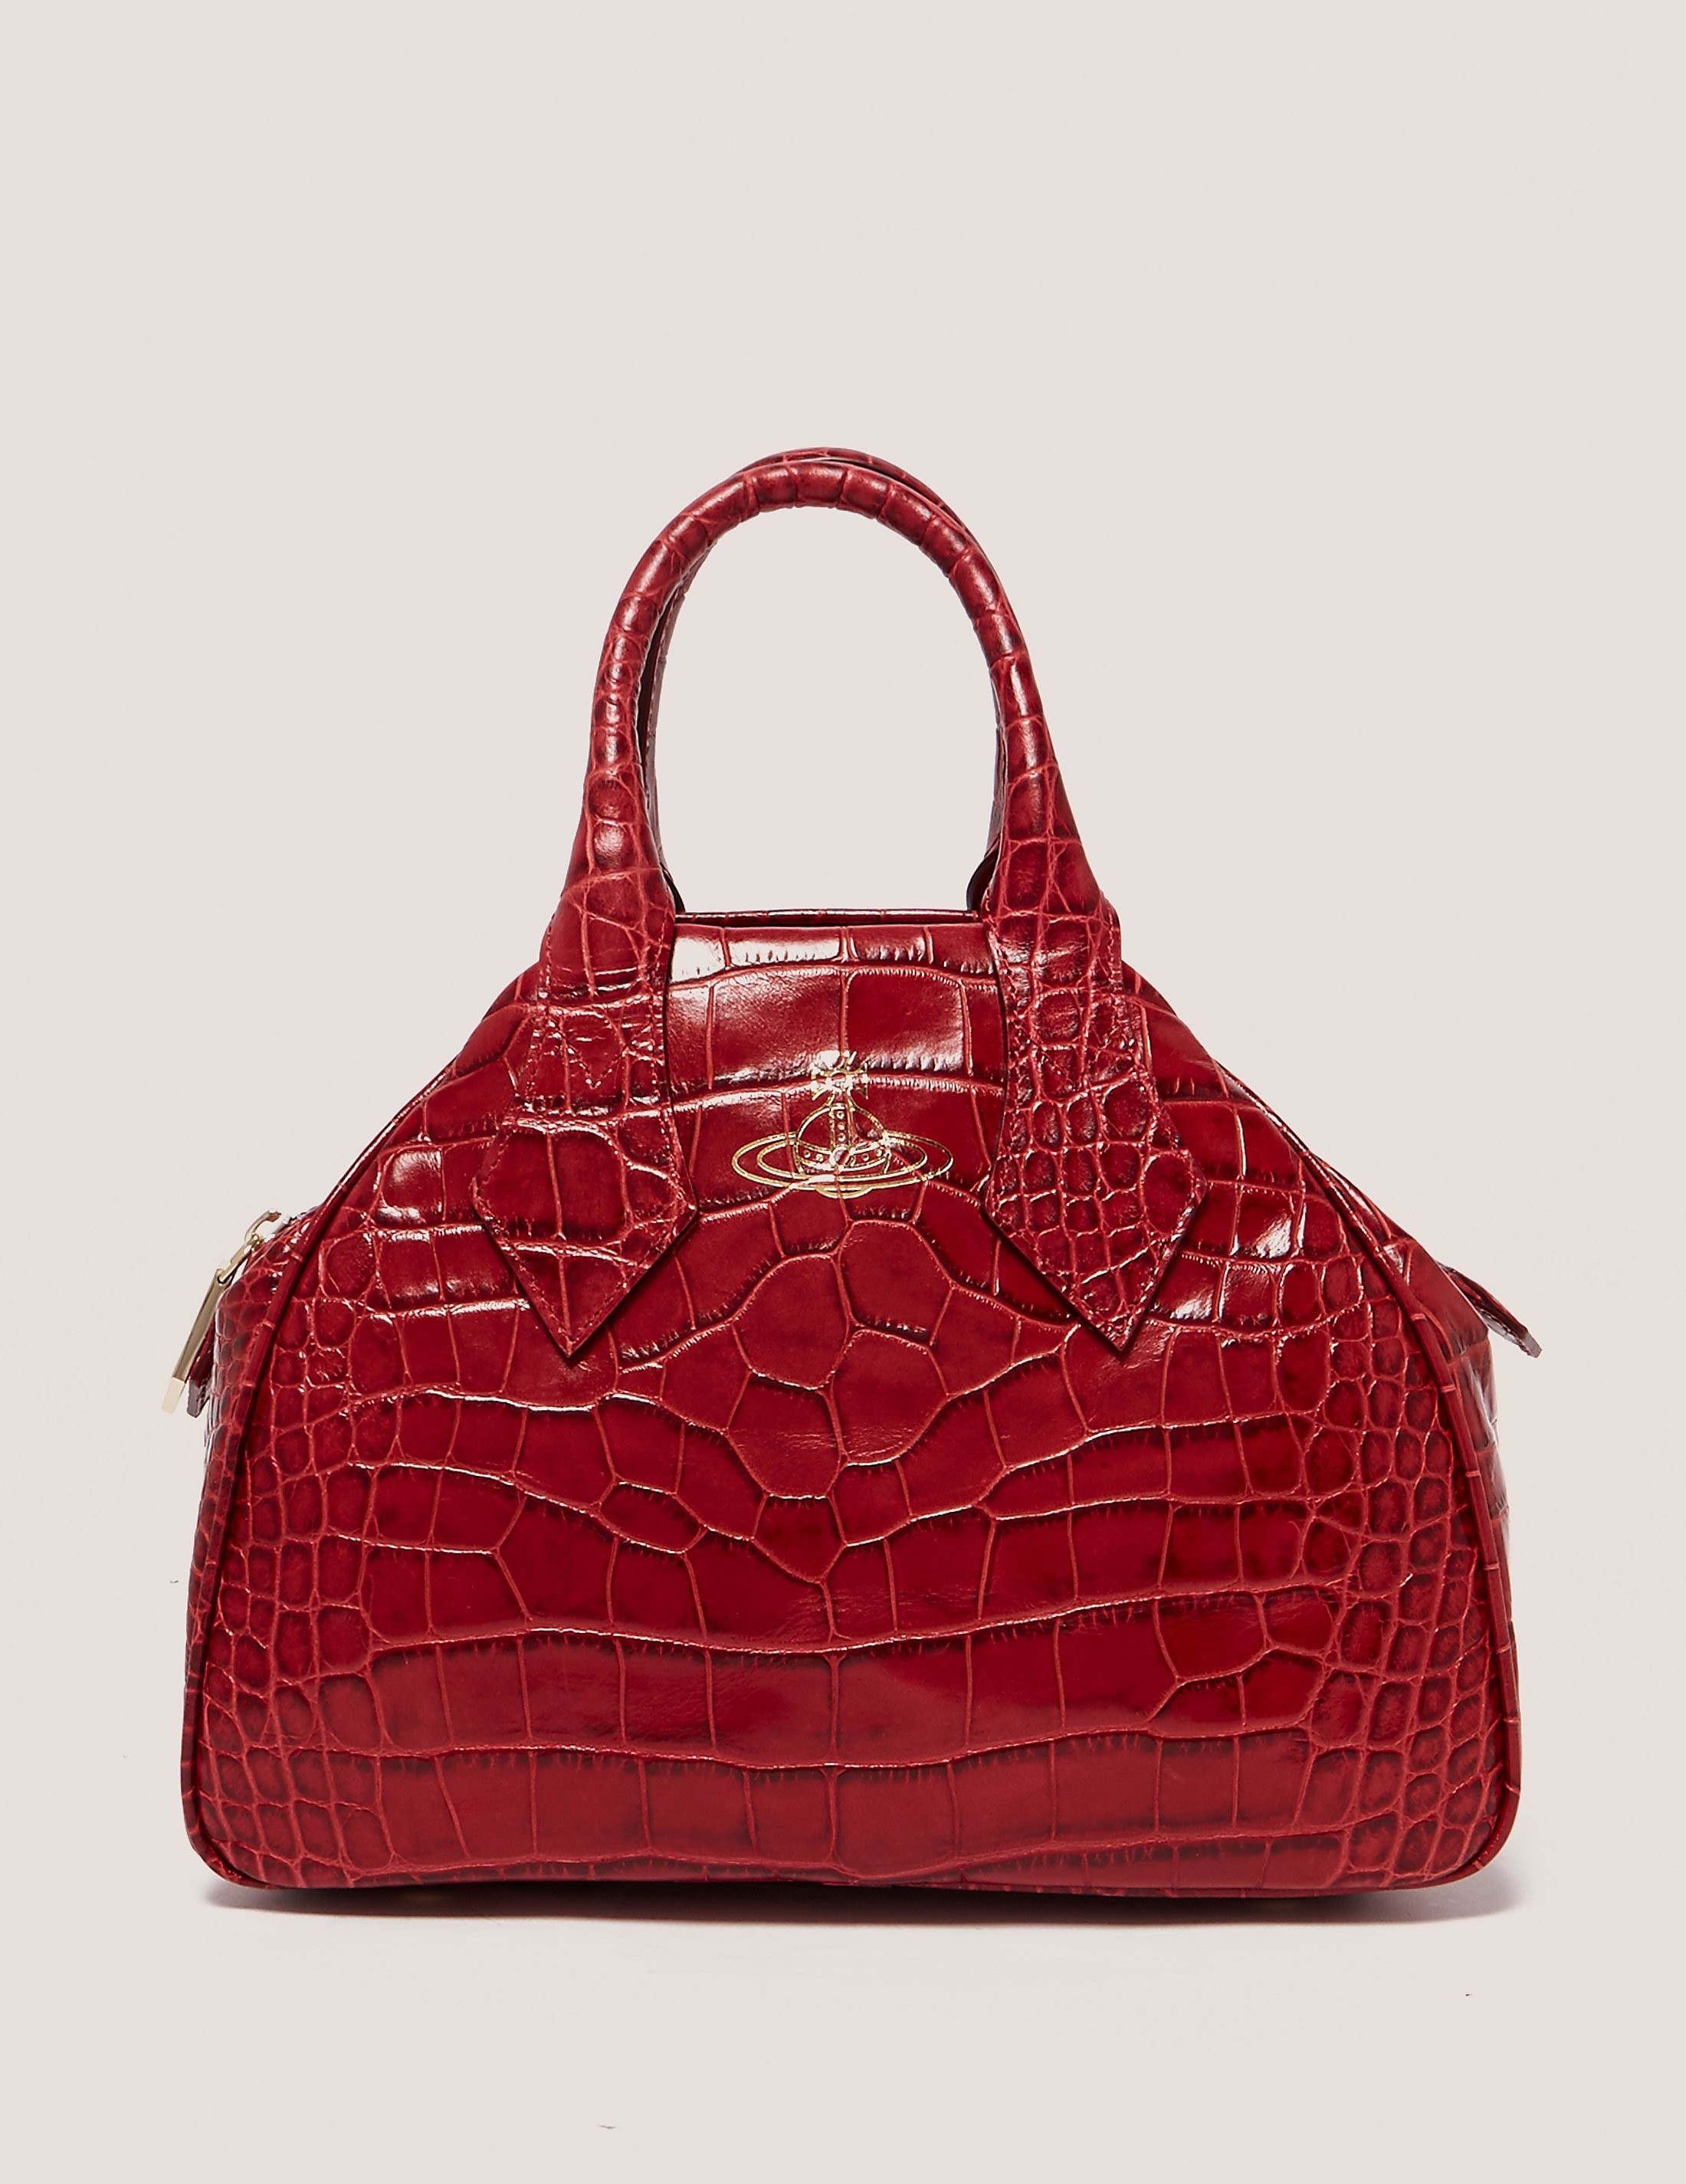 Vivienne Westwood Yasmine Medium Bag